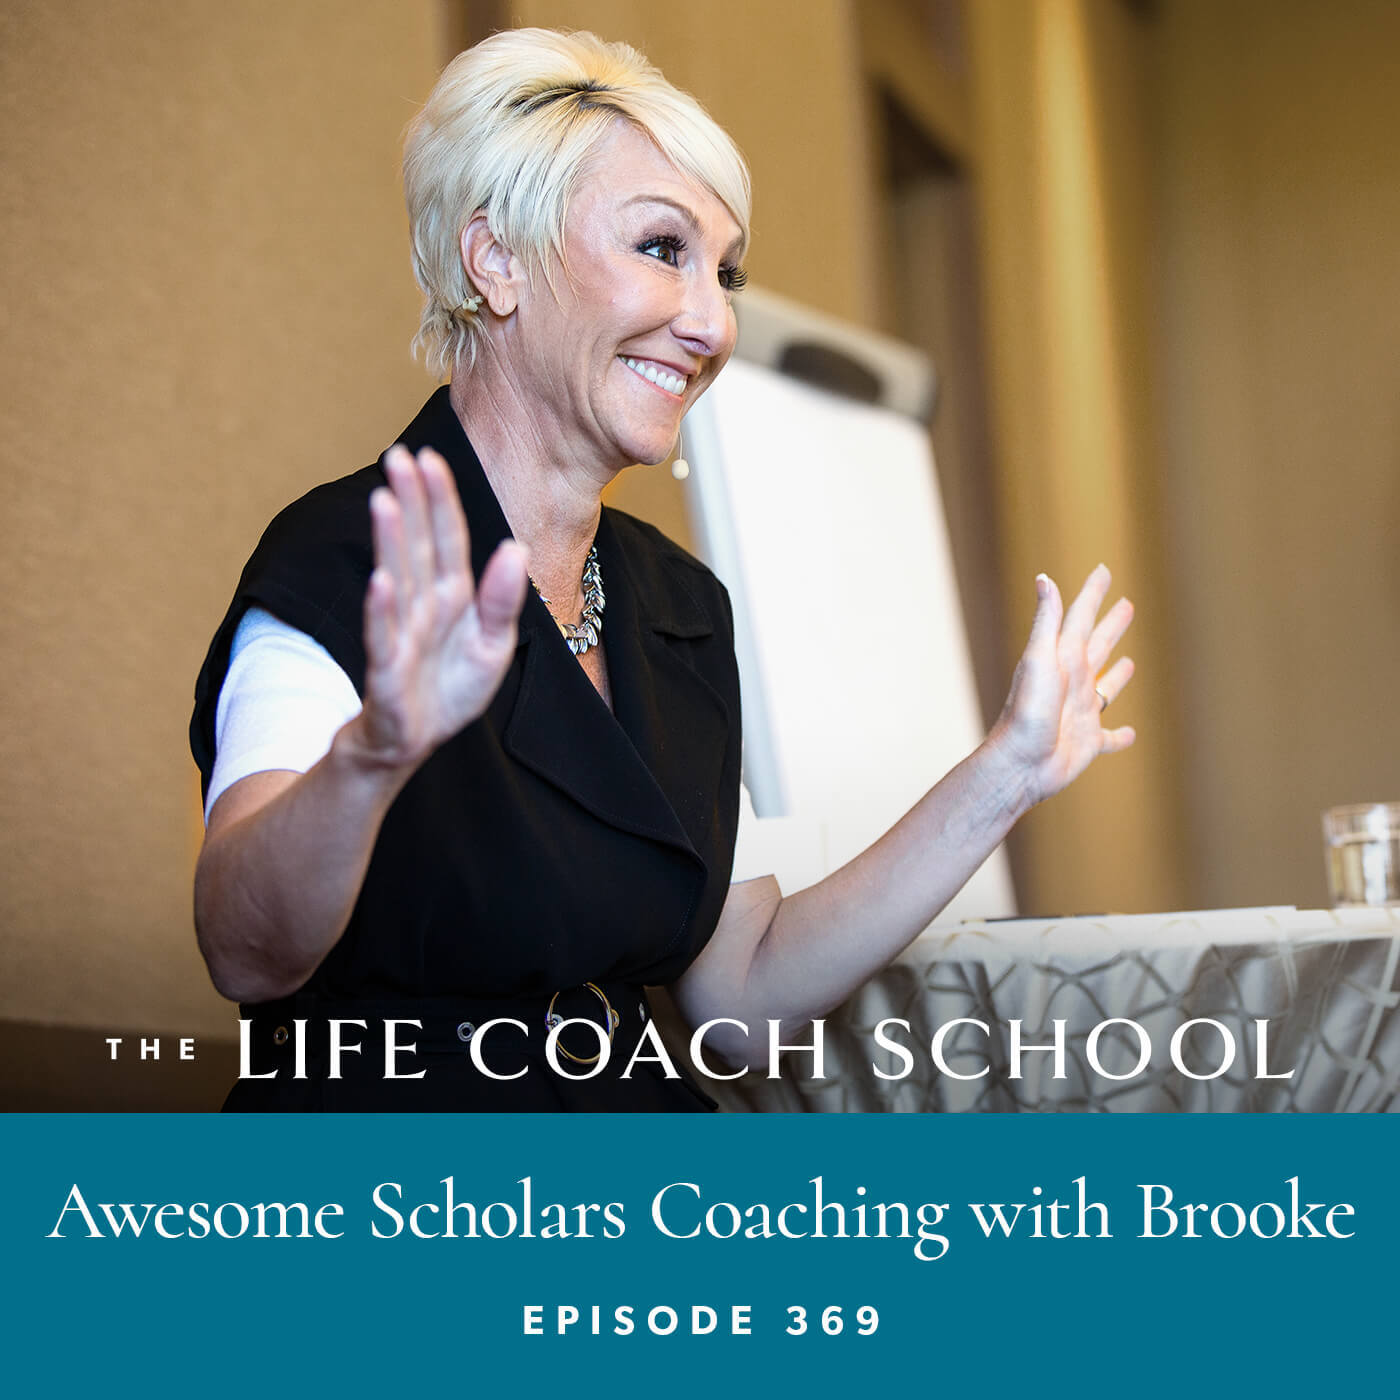 Ep #369: Awesome Scholars Coaching with Brooke